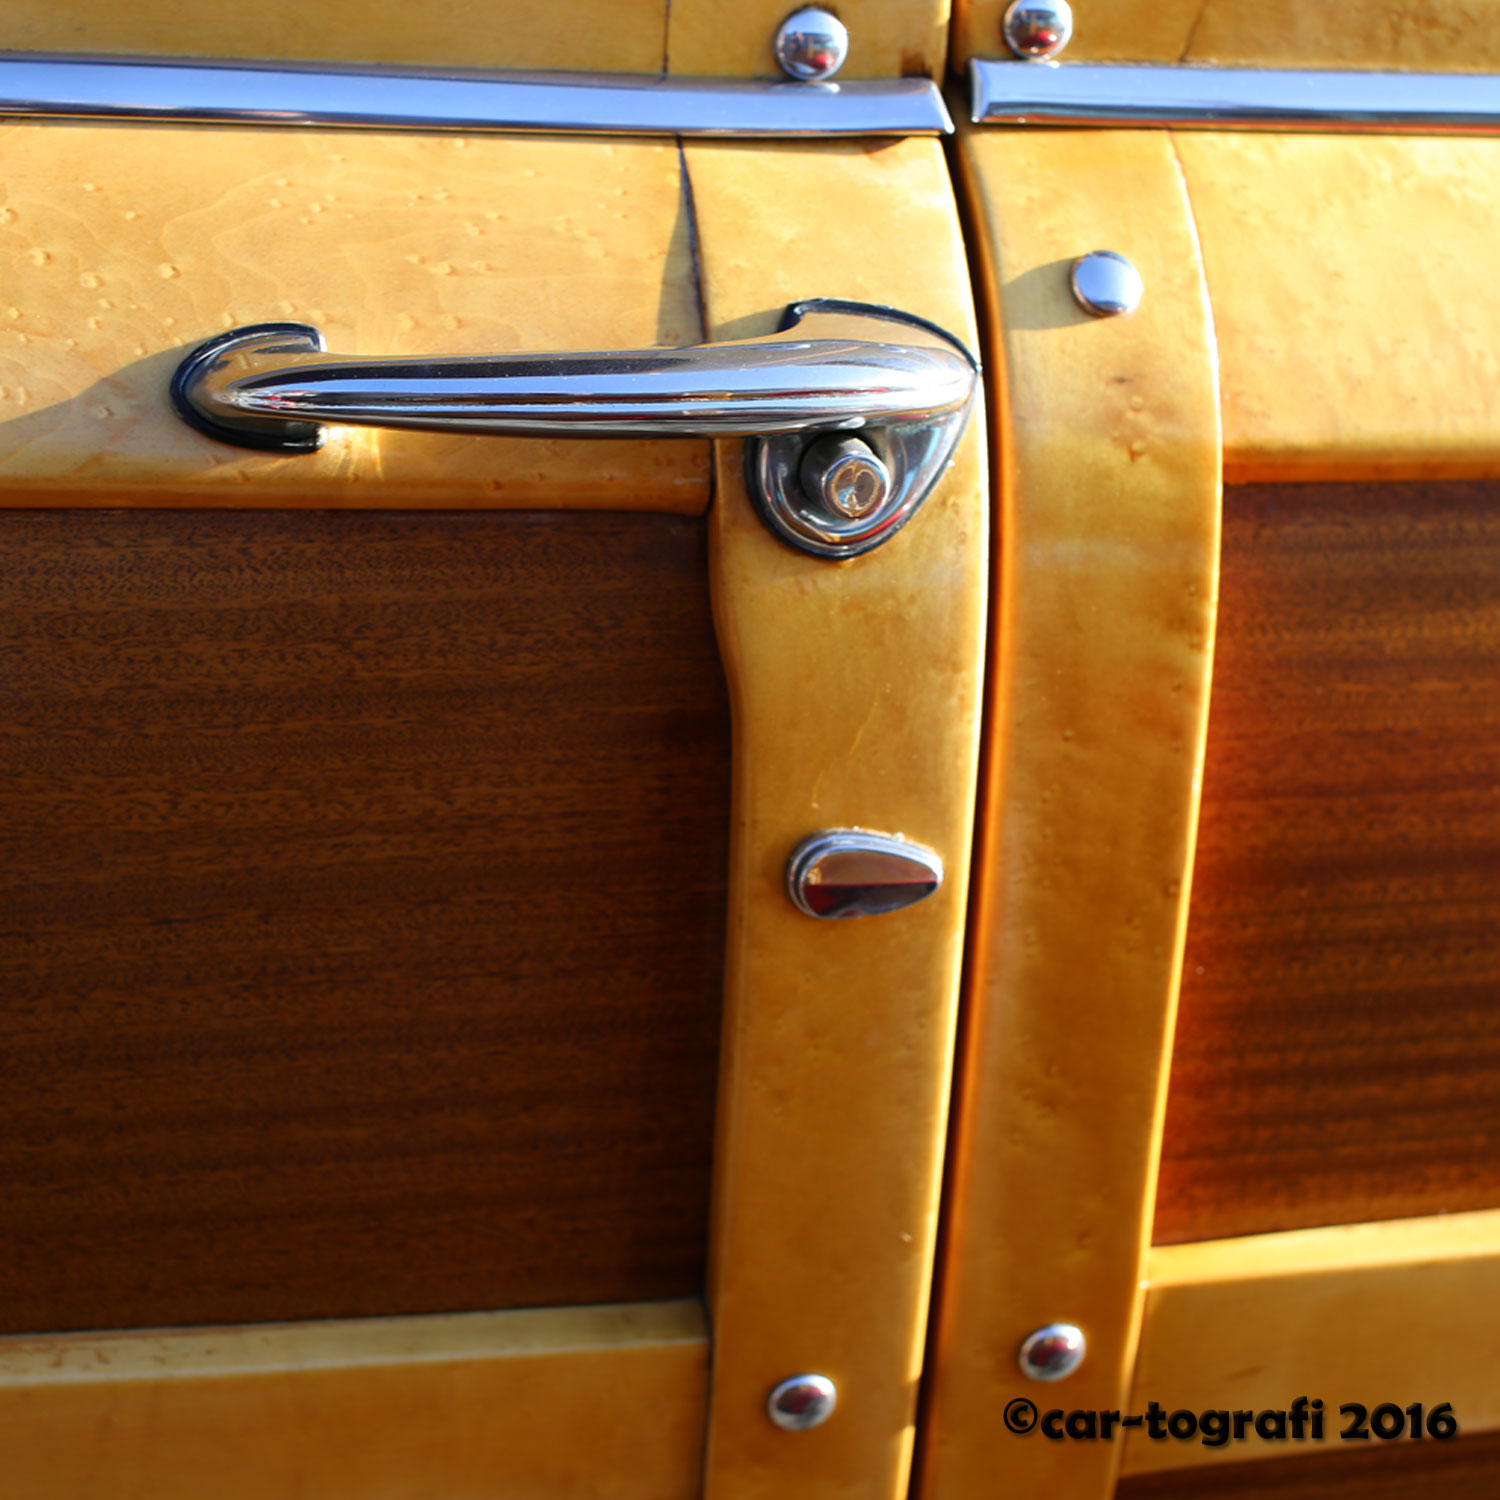 wood-doheny-car-tografi-16.jpg